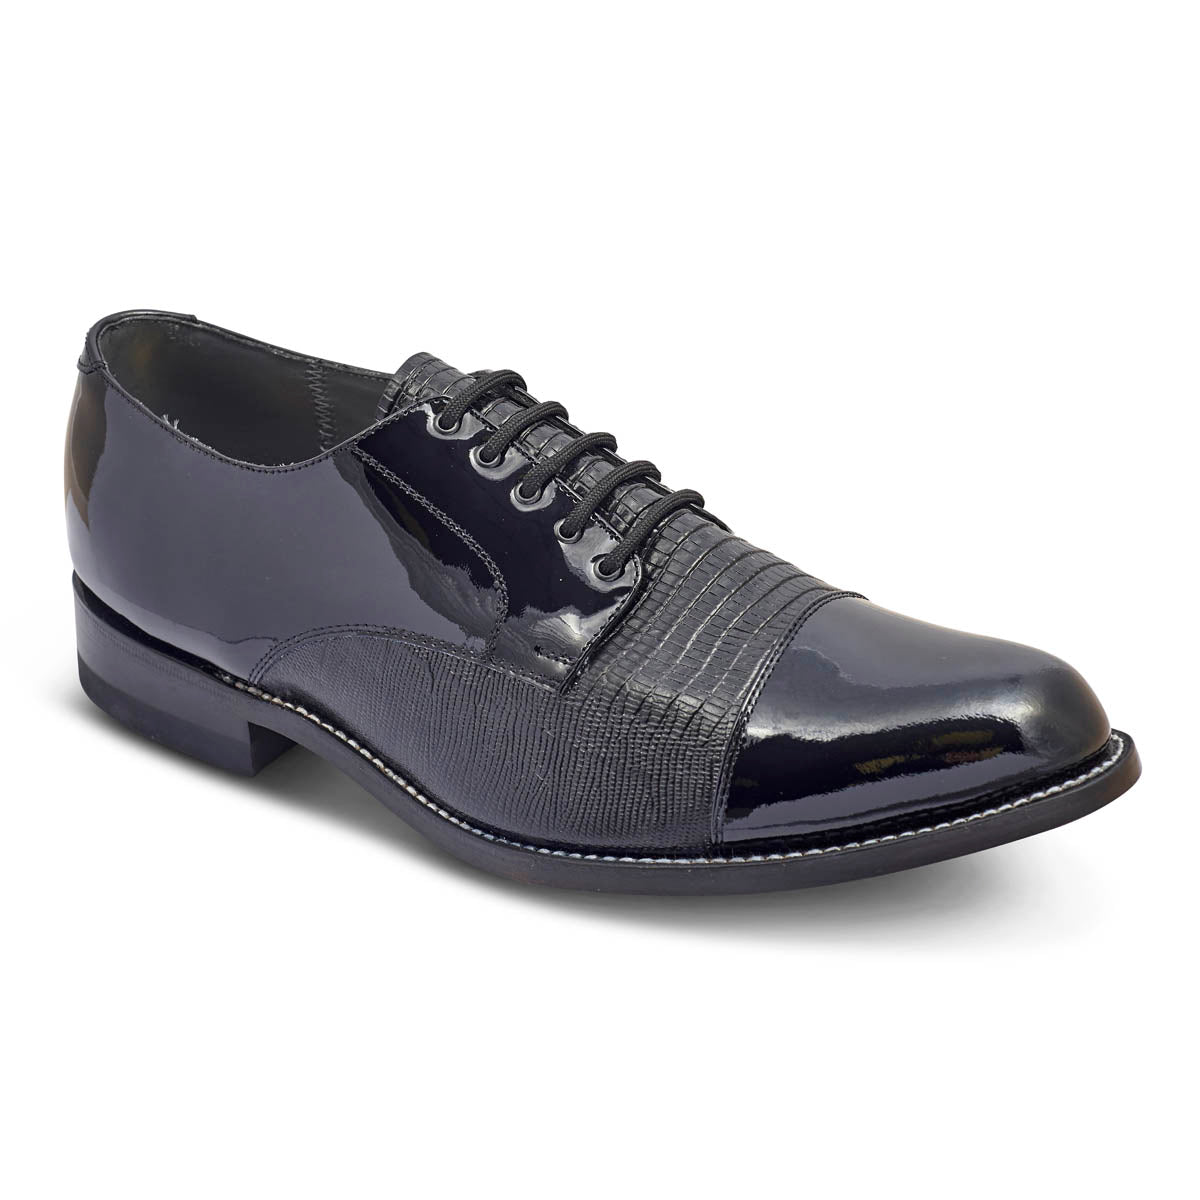 STACY PENNER - Black Cap Toe (C1609)